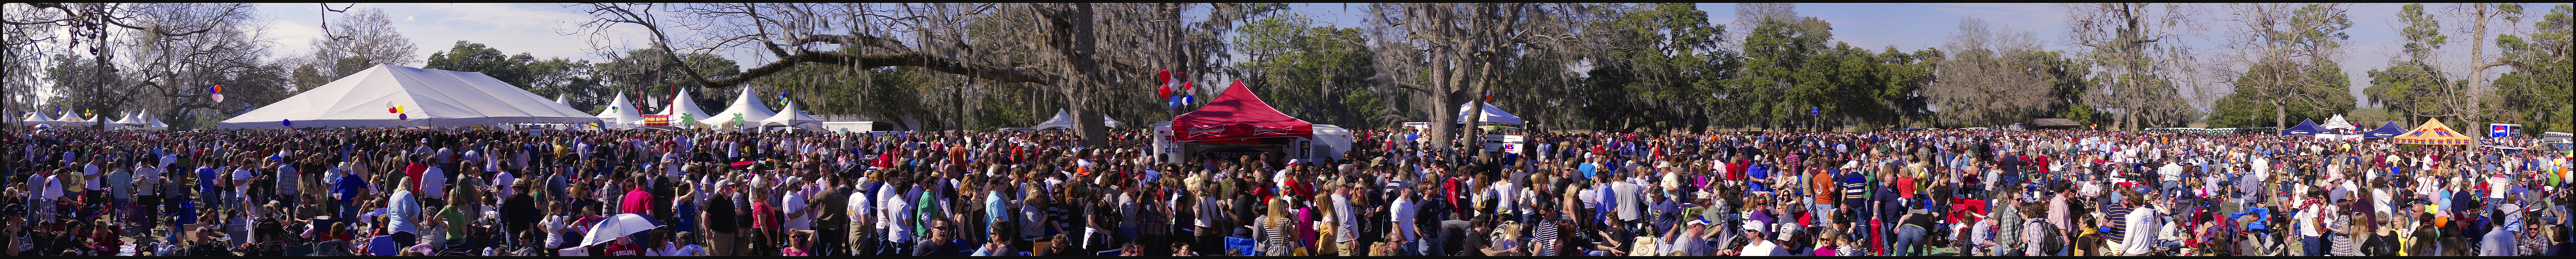 Lowcountry Oyster Festival 2011 - Panorama 1